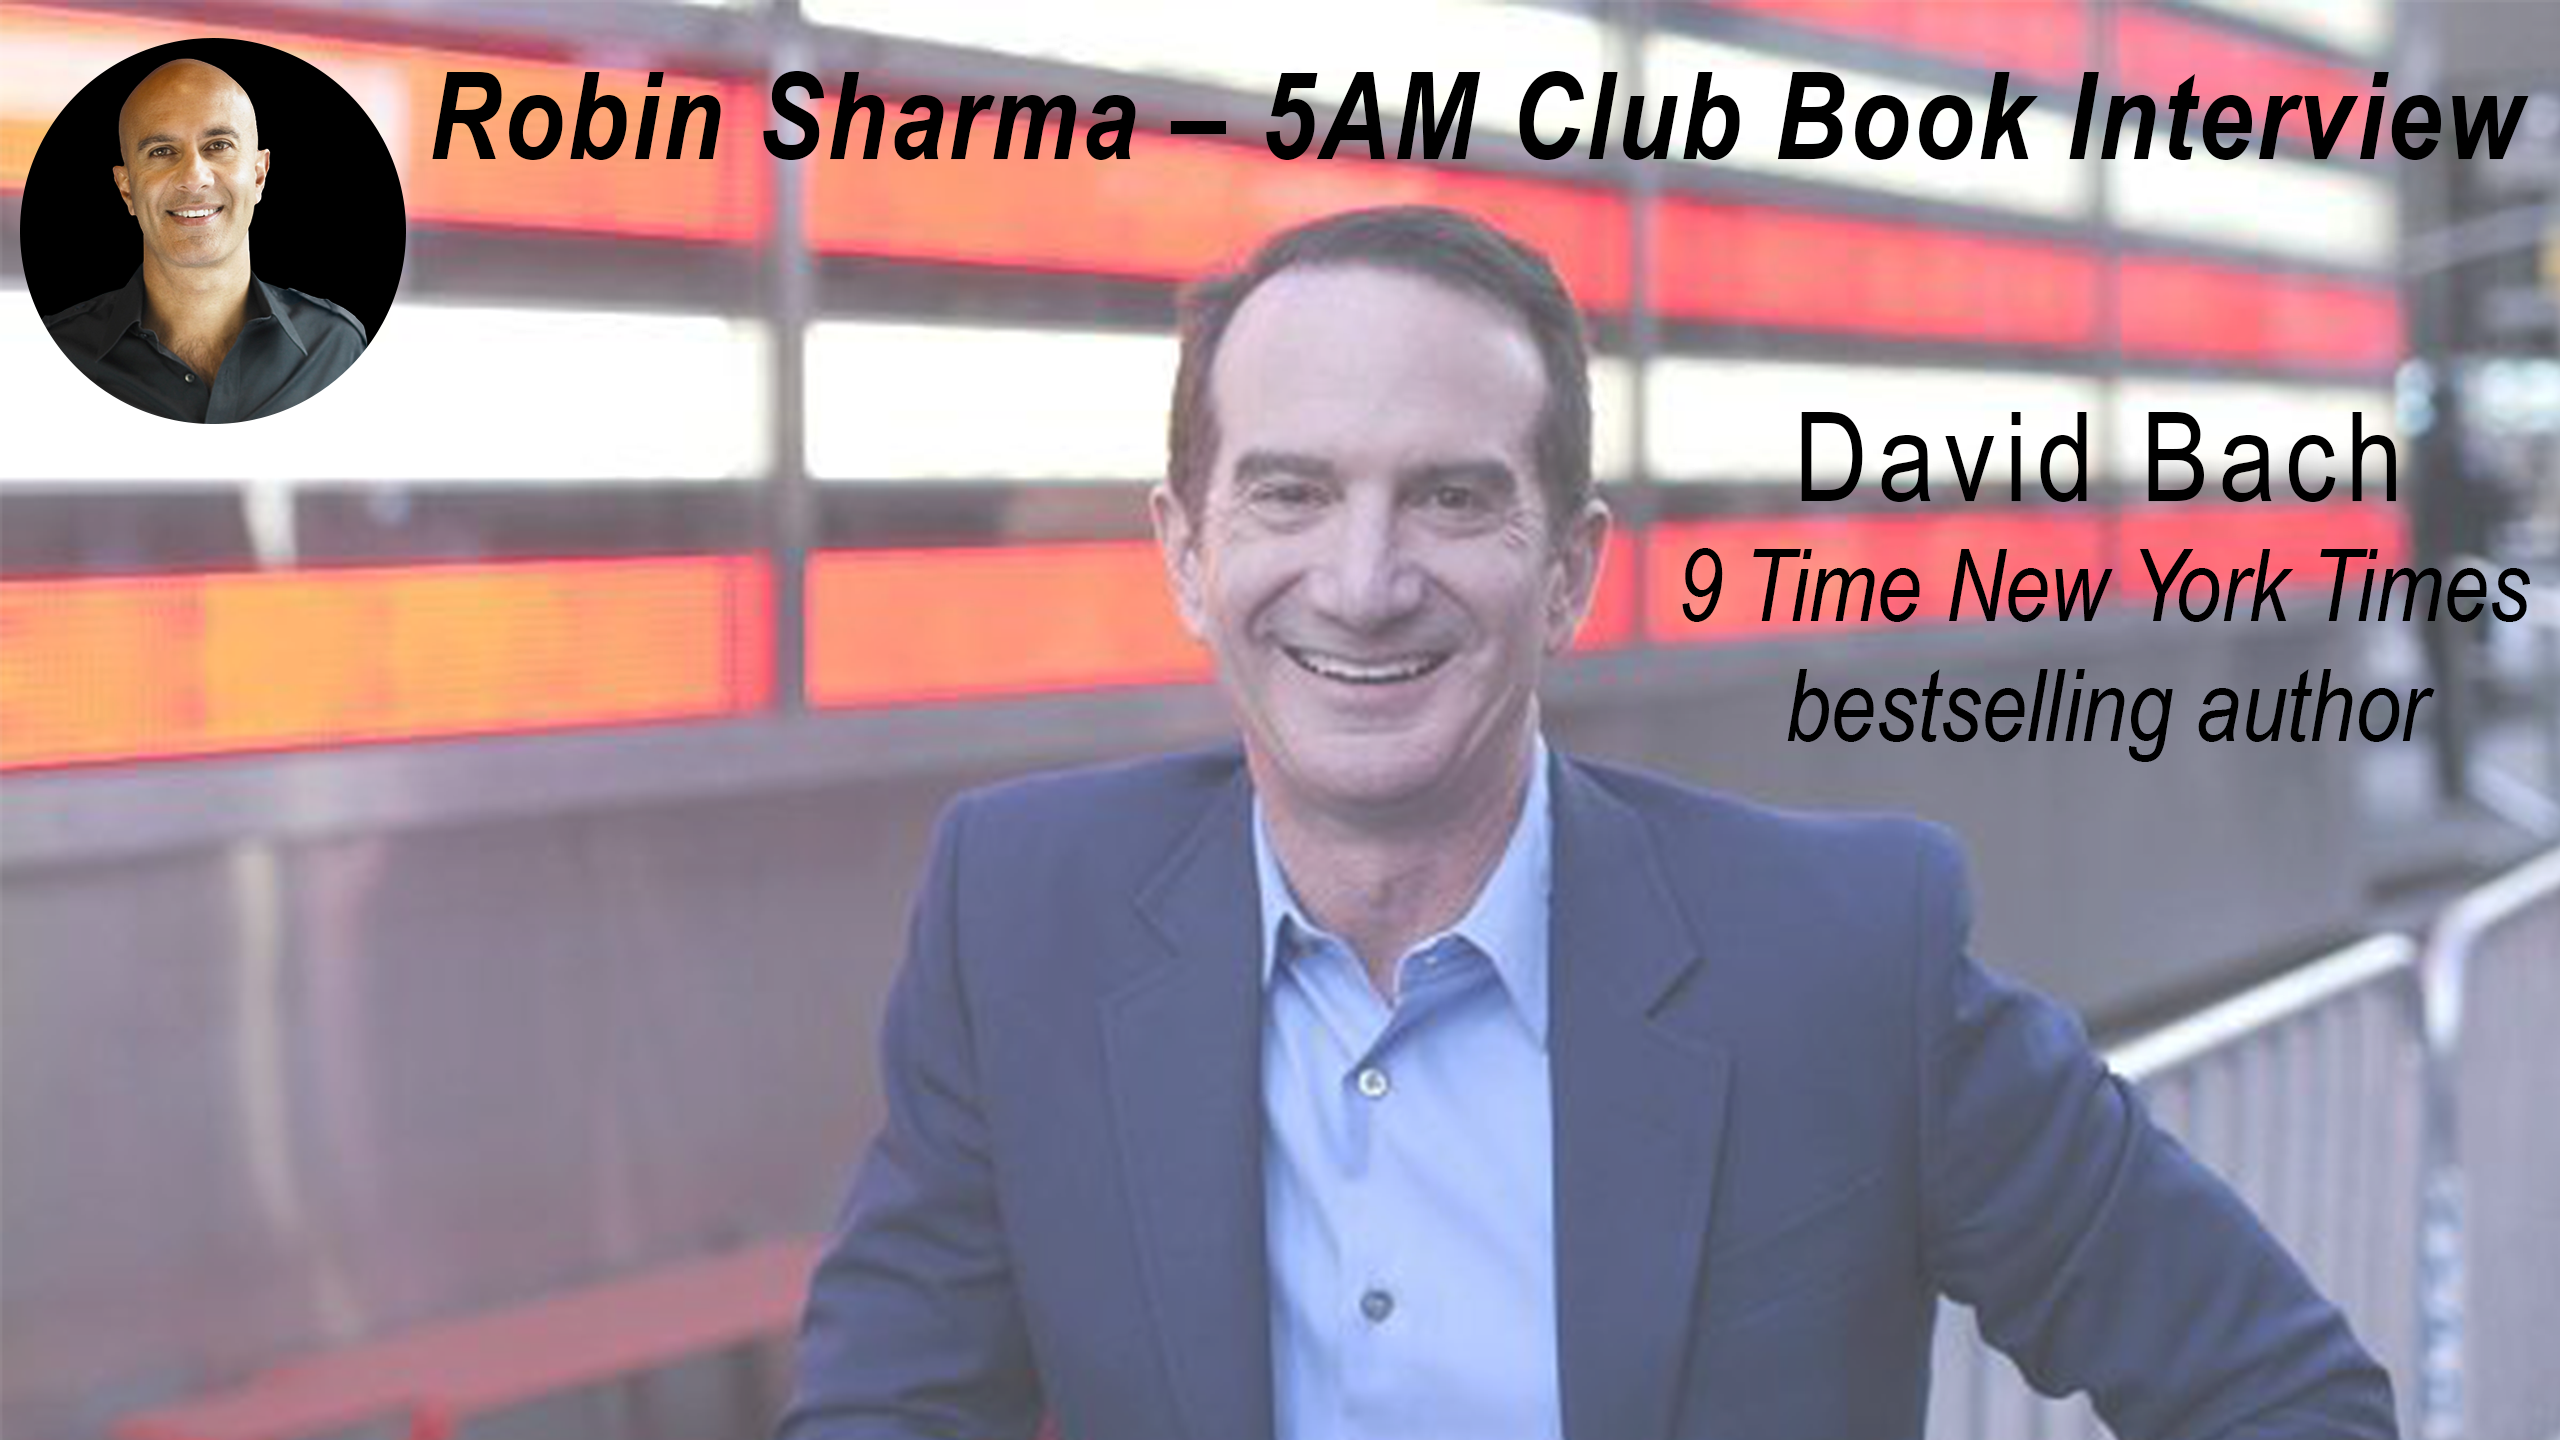 Join The 5AM Club With Robin Sharma - Official Site of David Bach